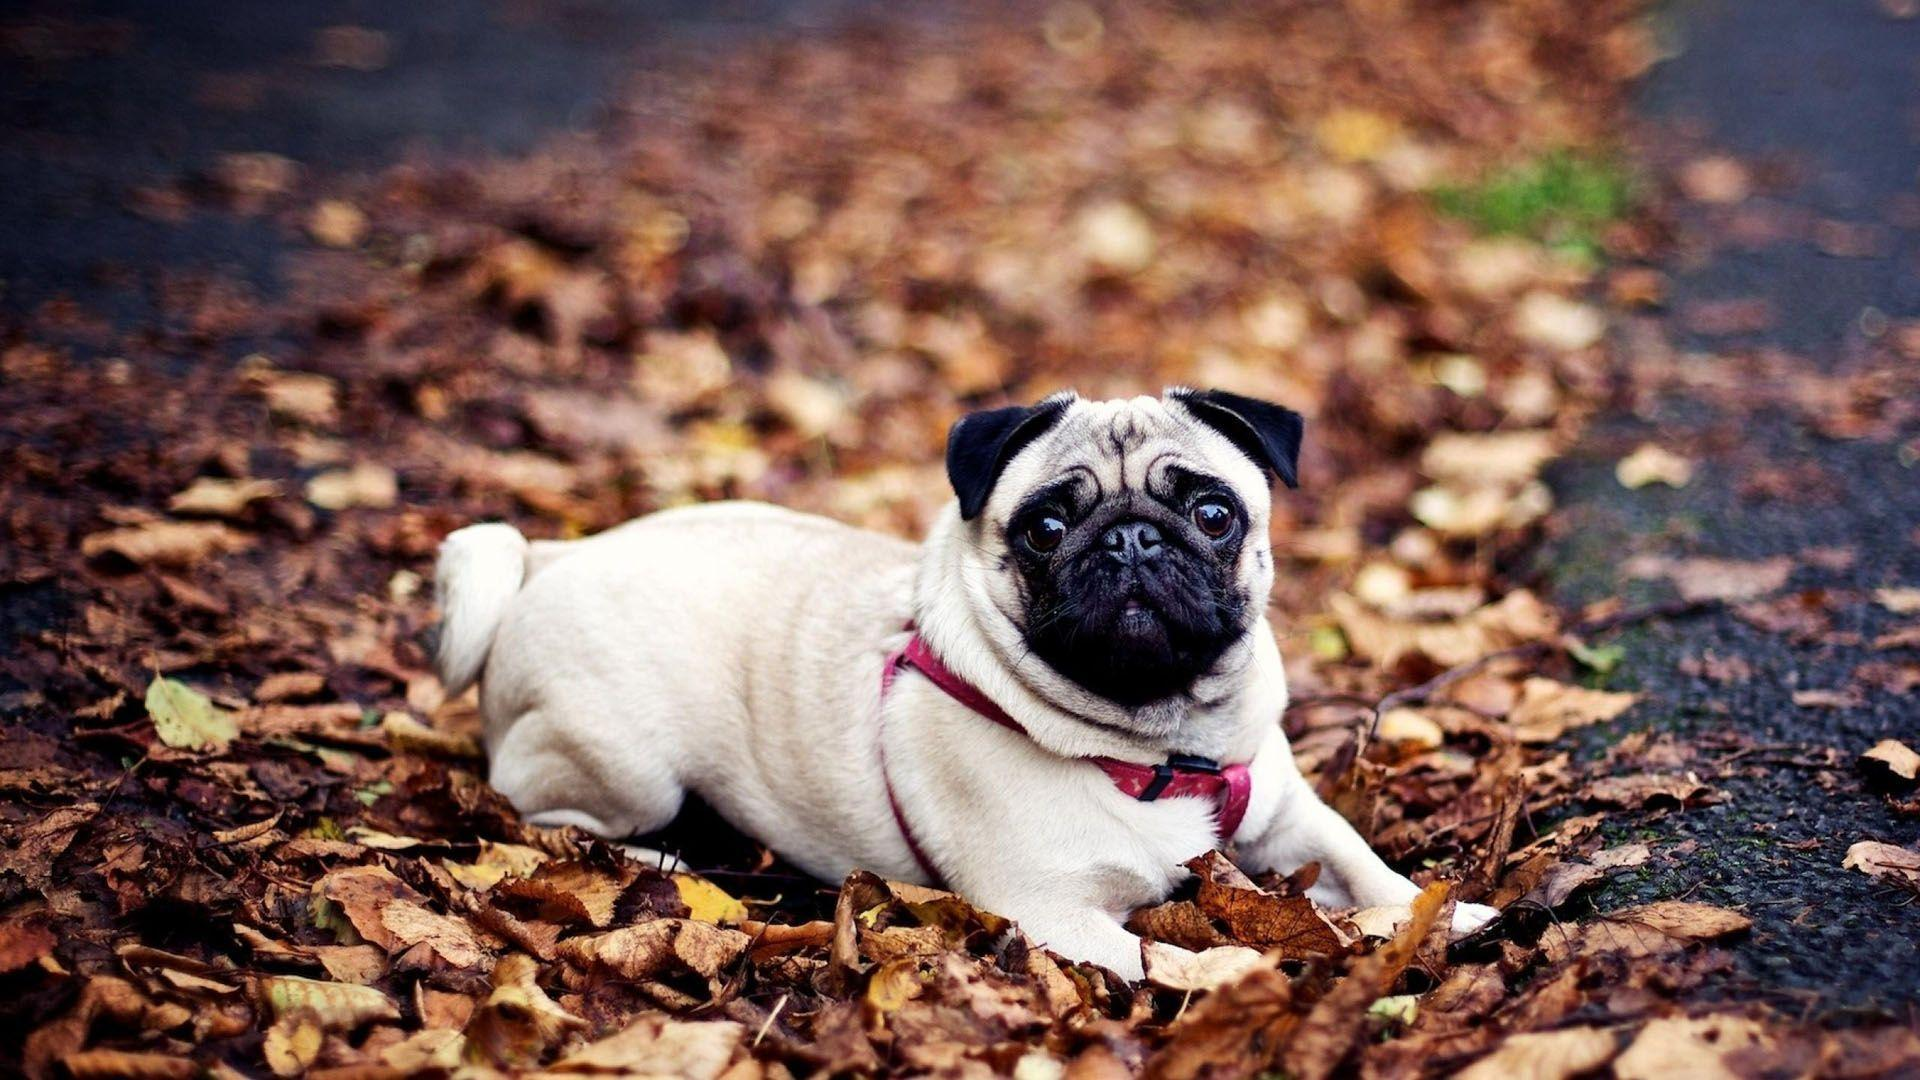 pug dog wallpapers - wallpaper cave